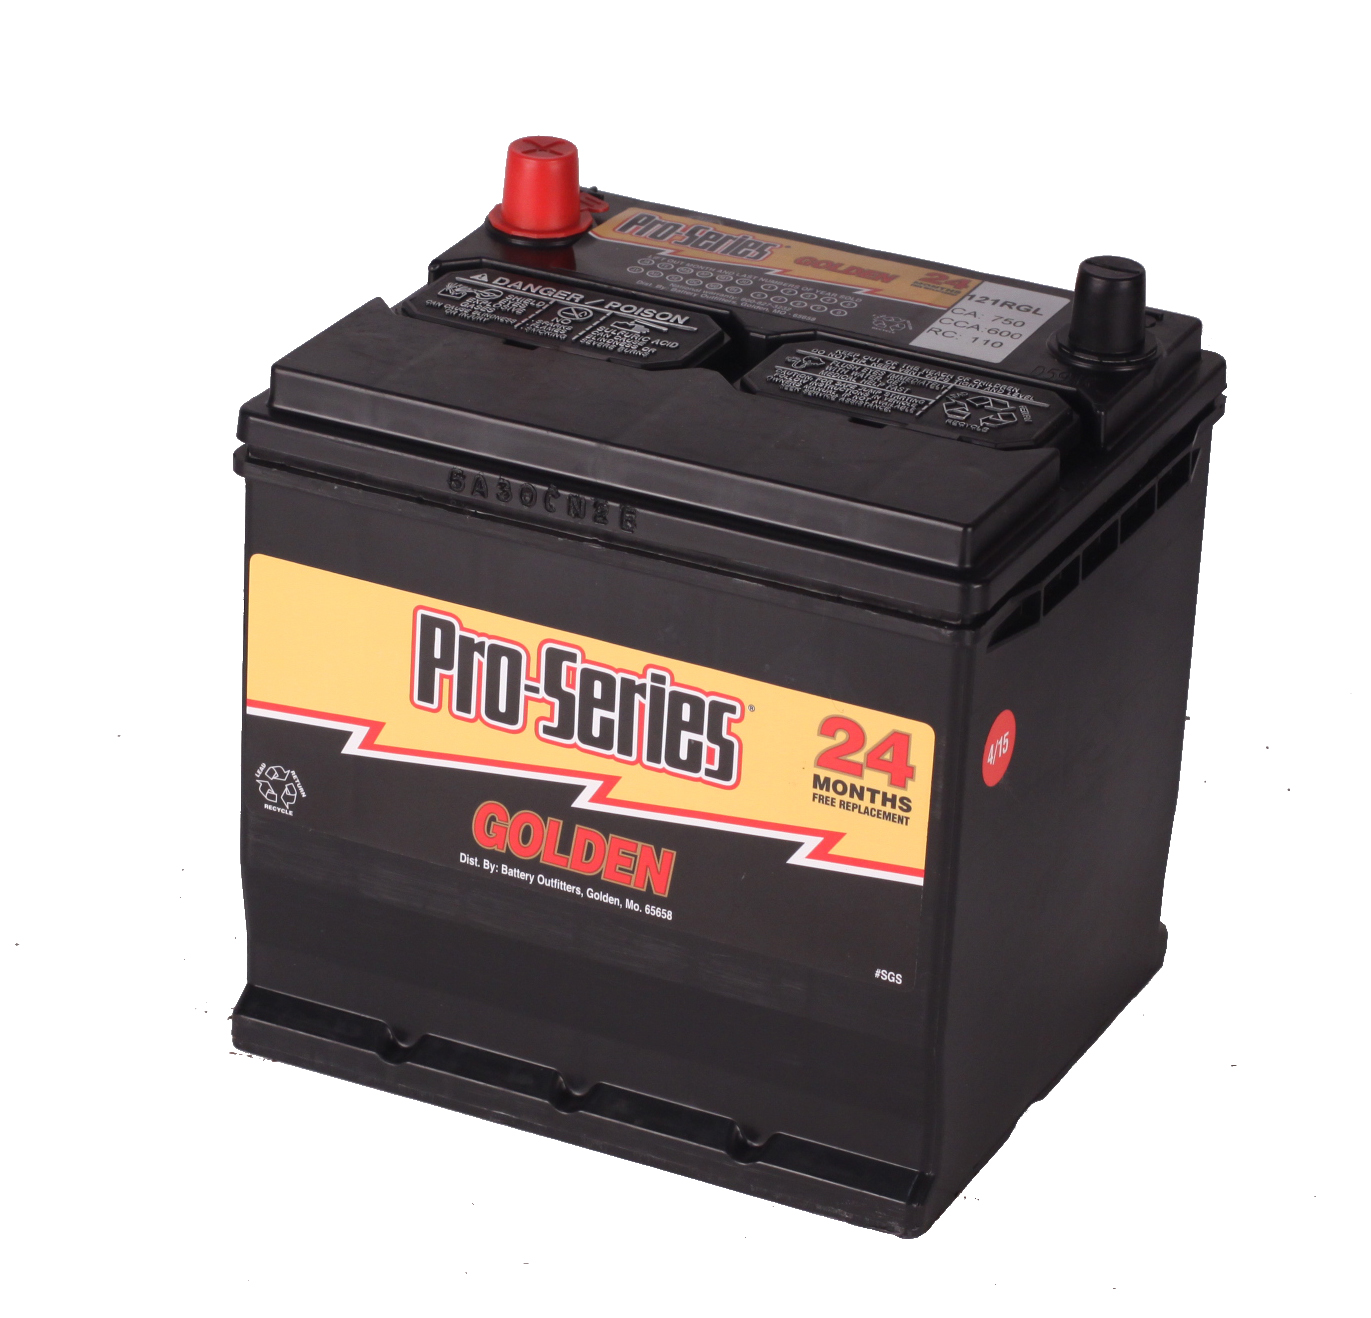 Pro Series Group 121R Battery